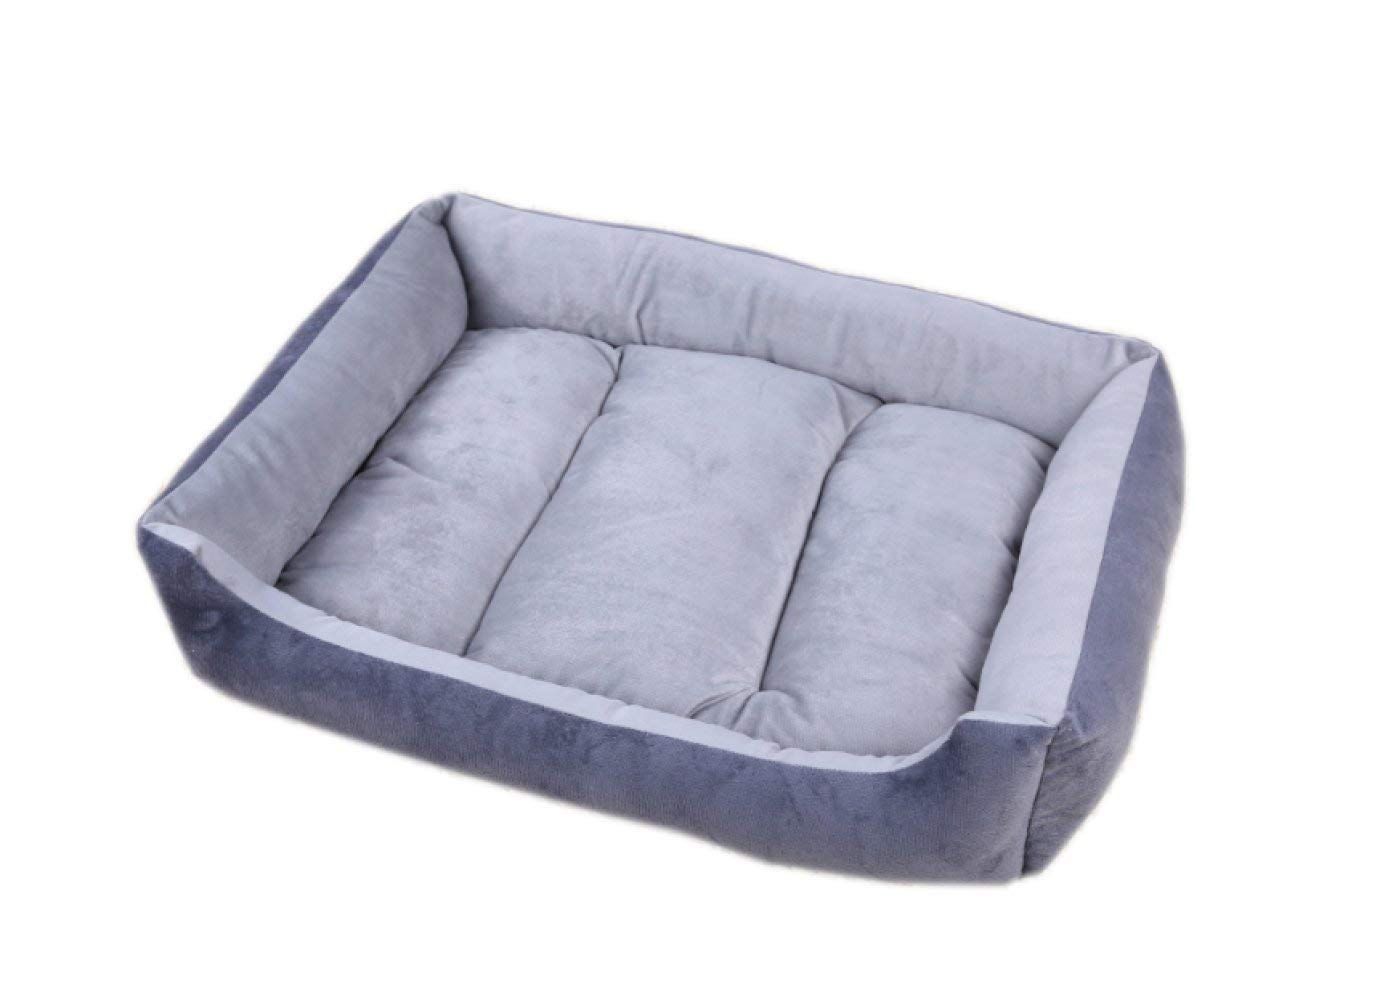 Pet Bed The Four Seasons Available Kennel Cat Litter The Washable Solid color Pet Mat,Multi-colord-70  55  12cm